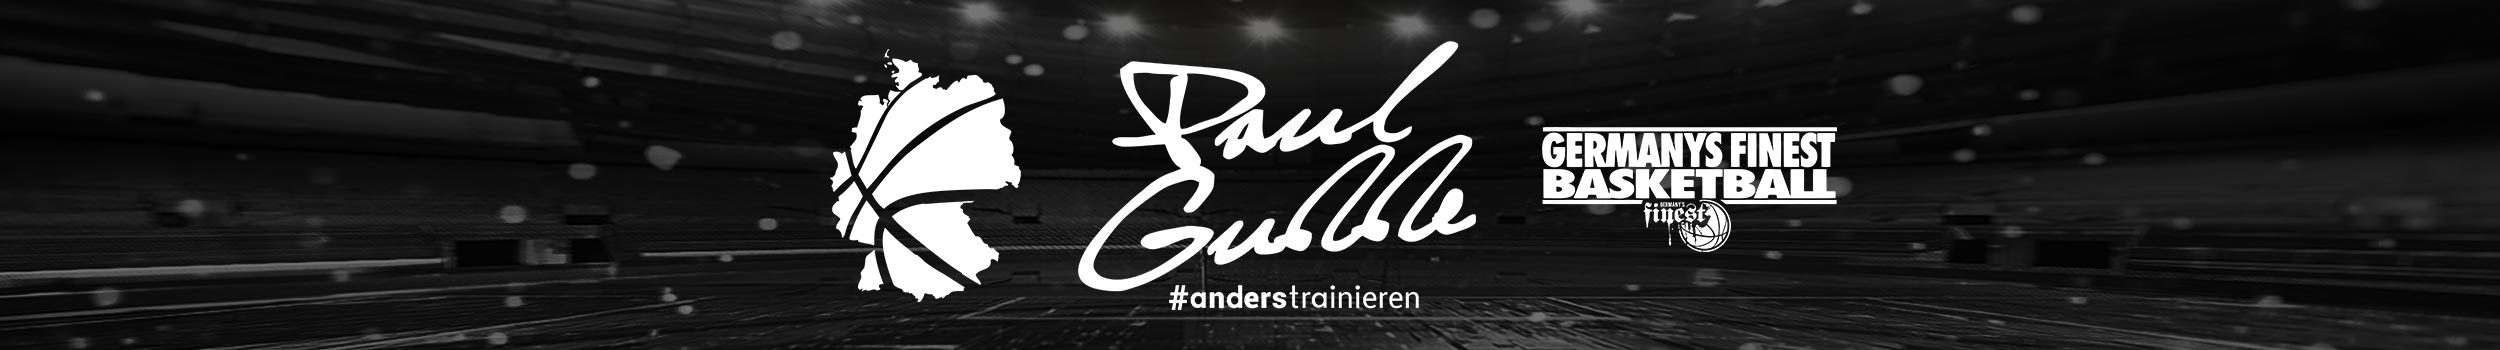 Paul Gudde | Germany's Finest Basketball